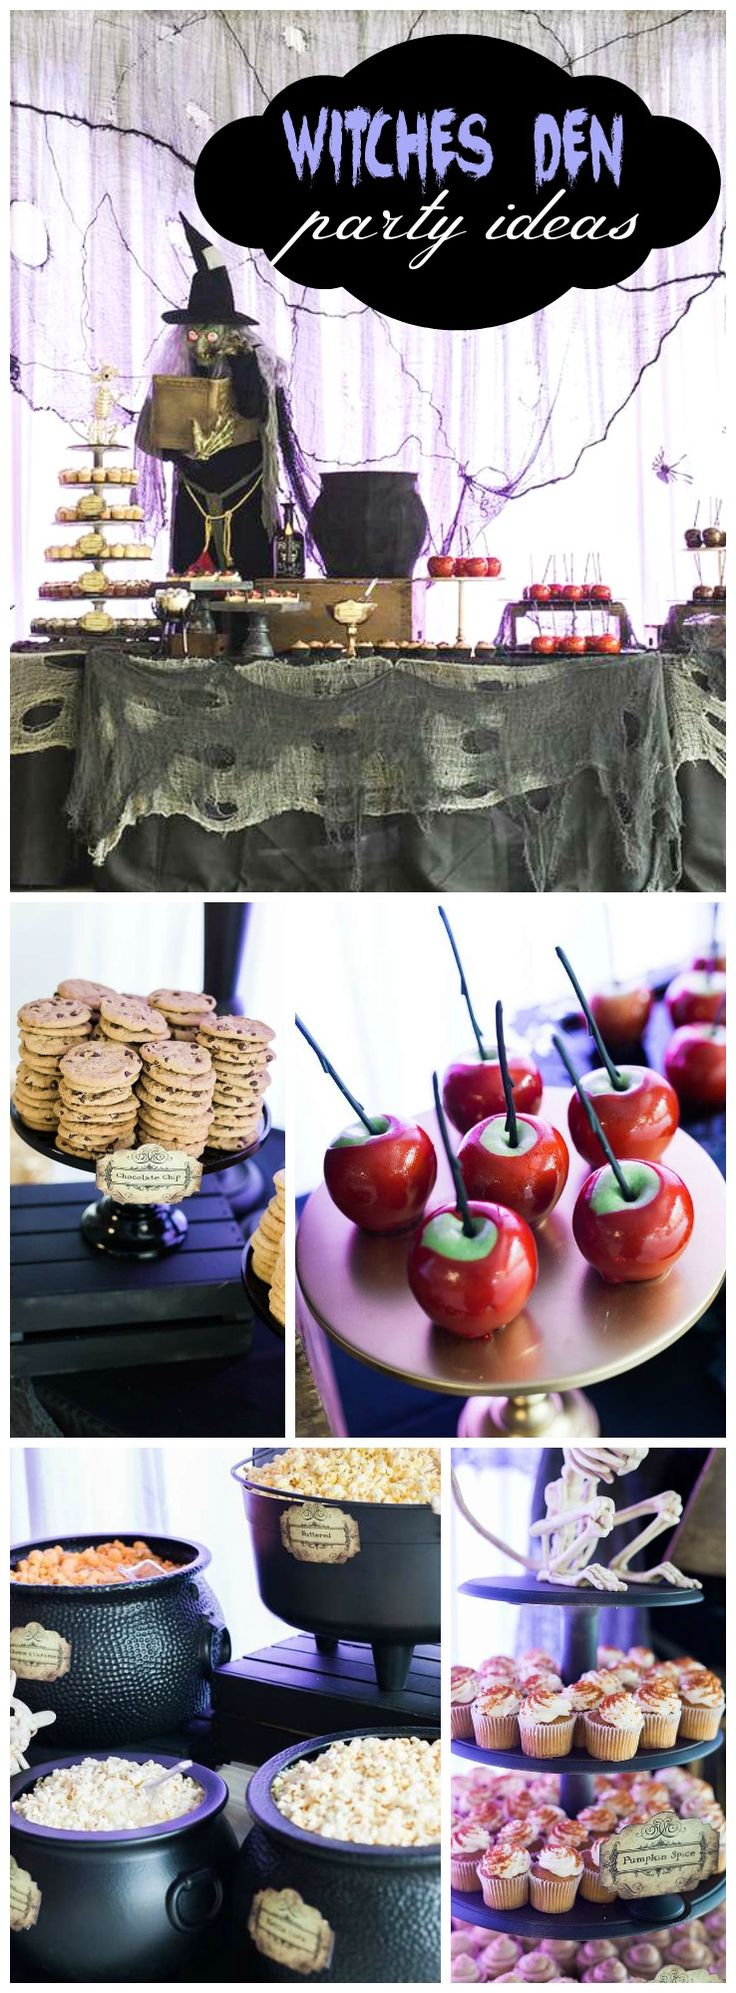 Best 10+ Witch party ideas on Pinterest | DIY Halloween, Halloween ...